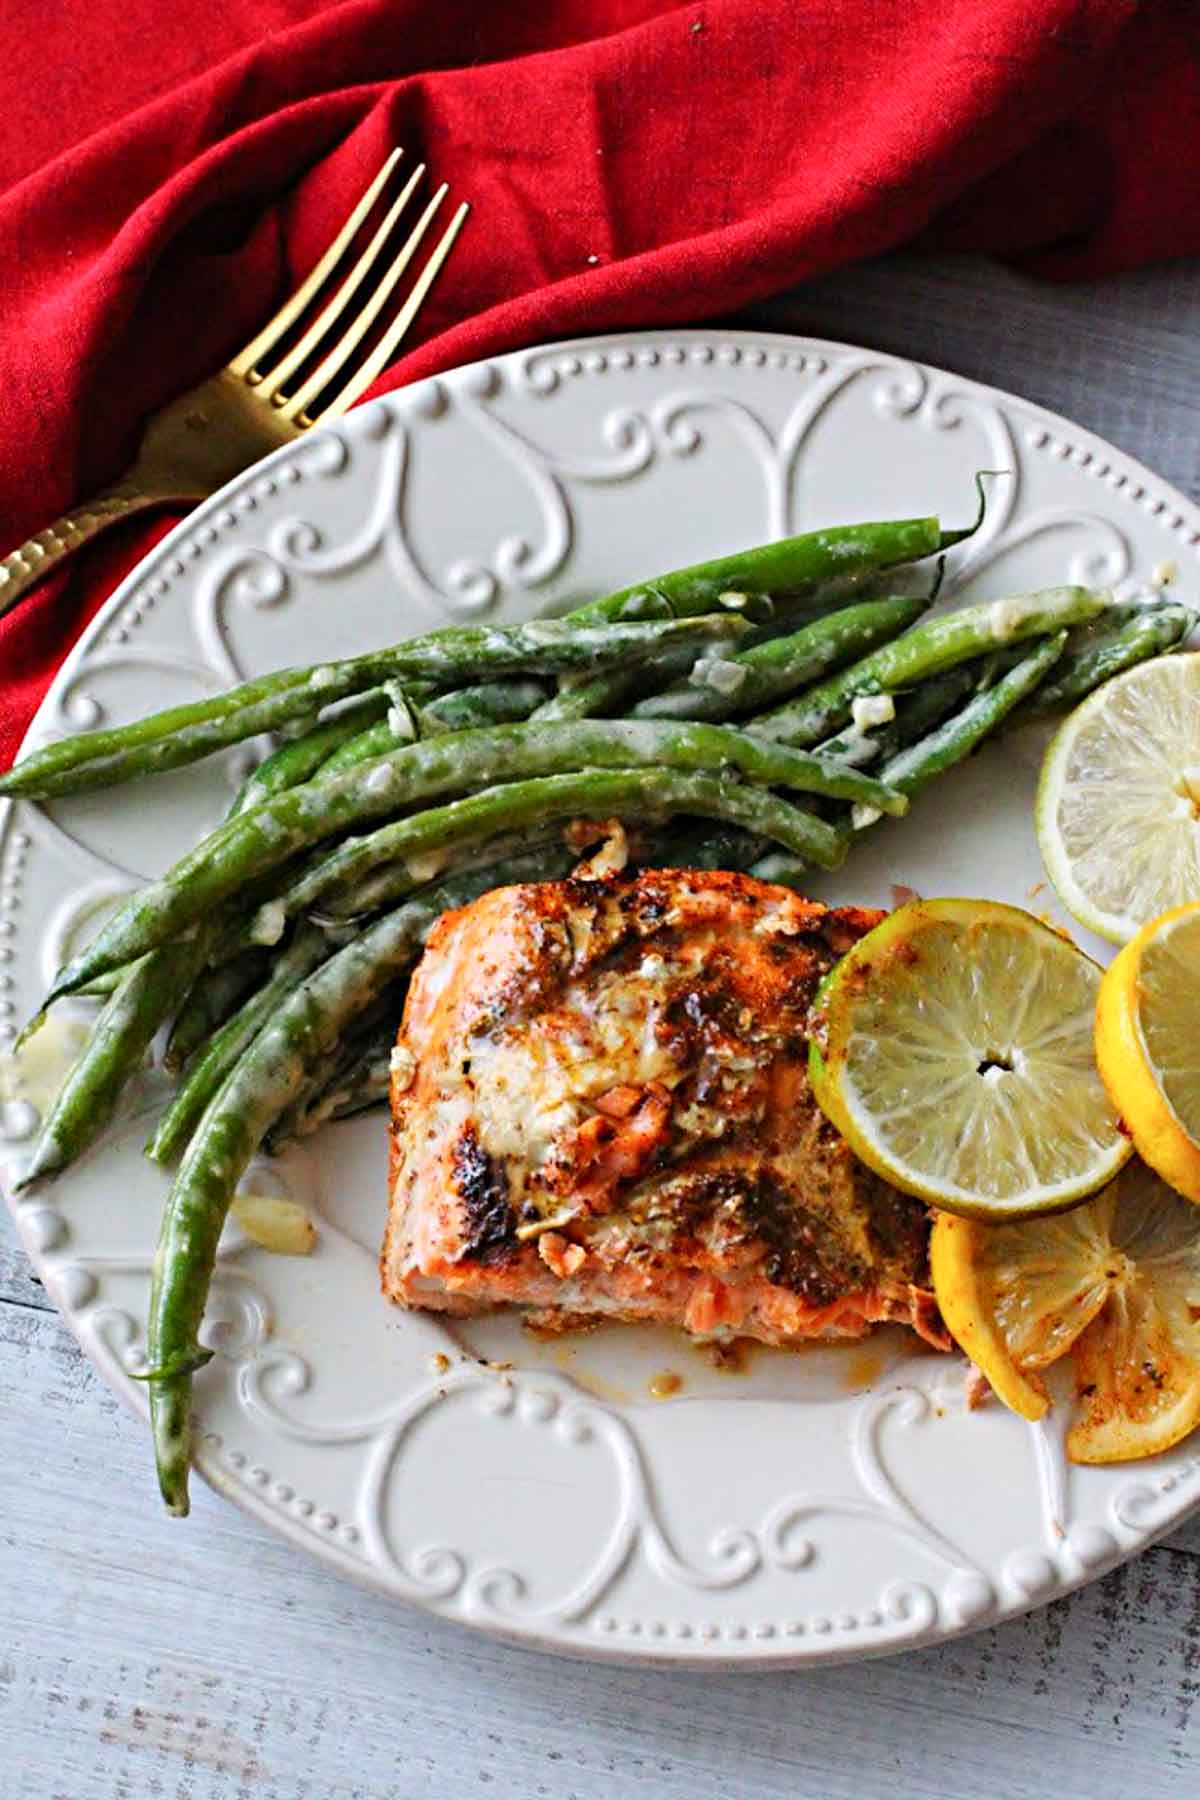 Lemon Lime Salmon recipe with lemon butter. An easy mid-week meal.